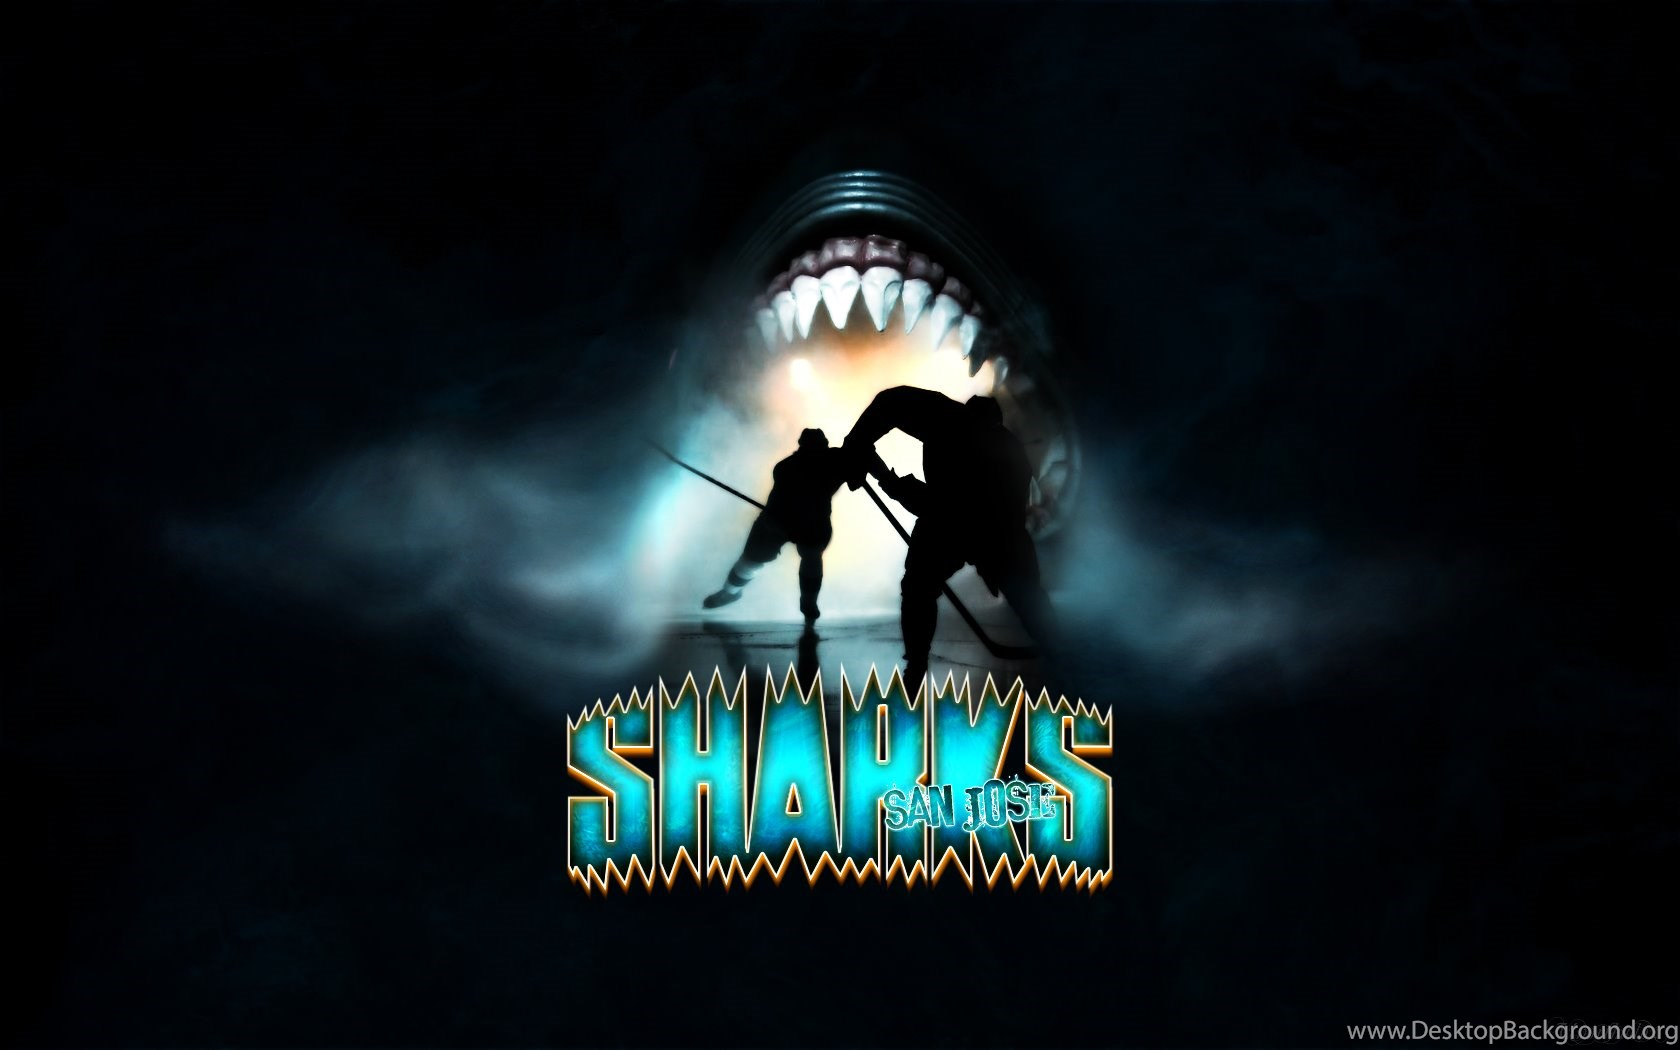 San Jose Sharks Wallpapers HD Desktop Background